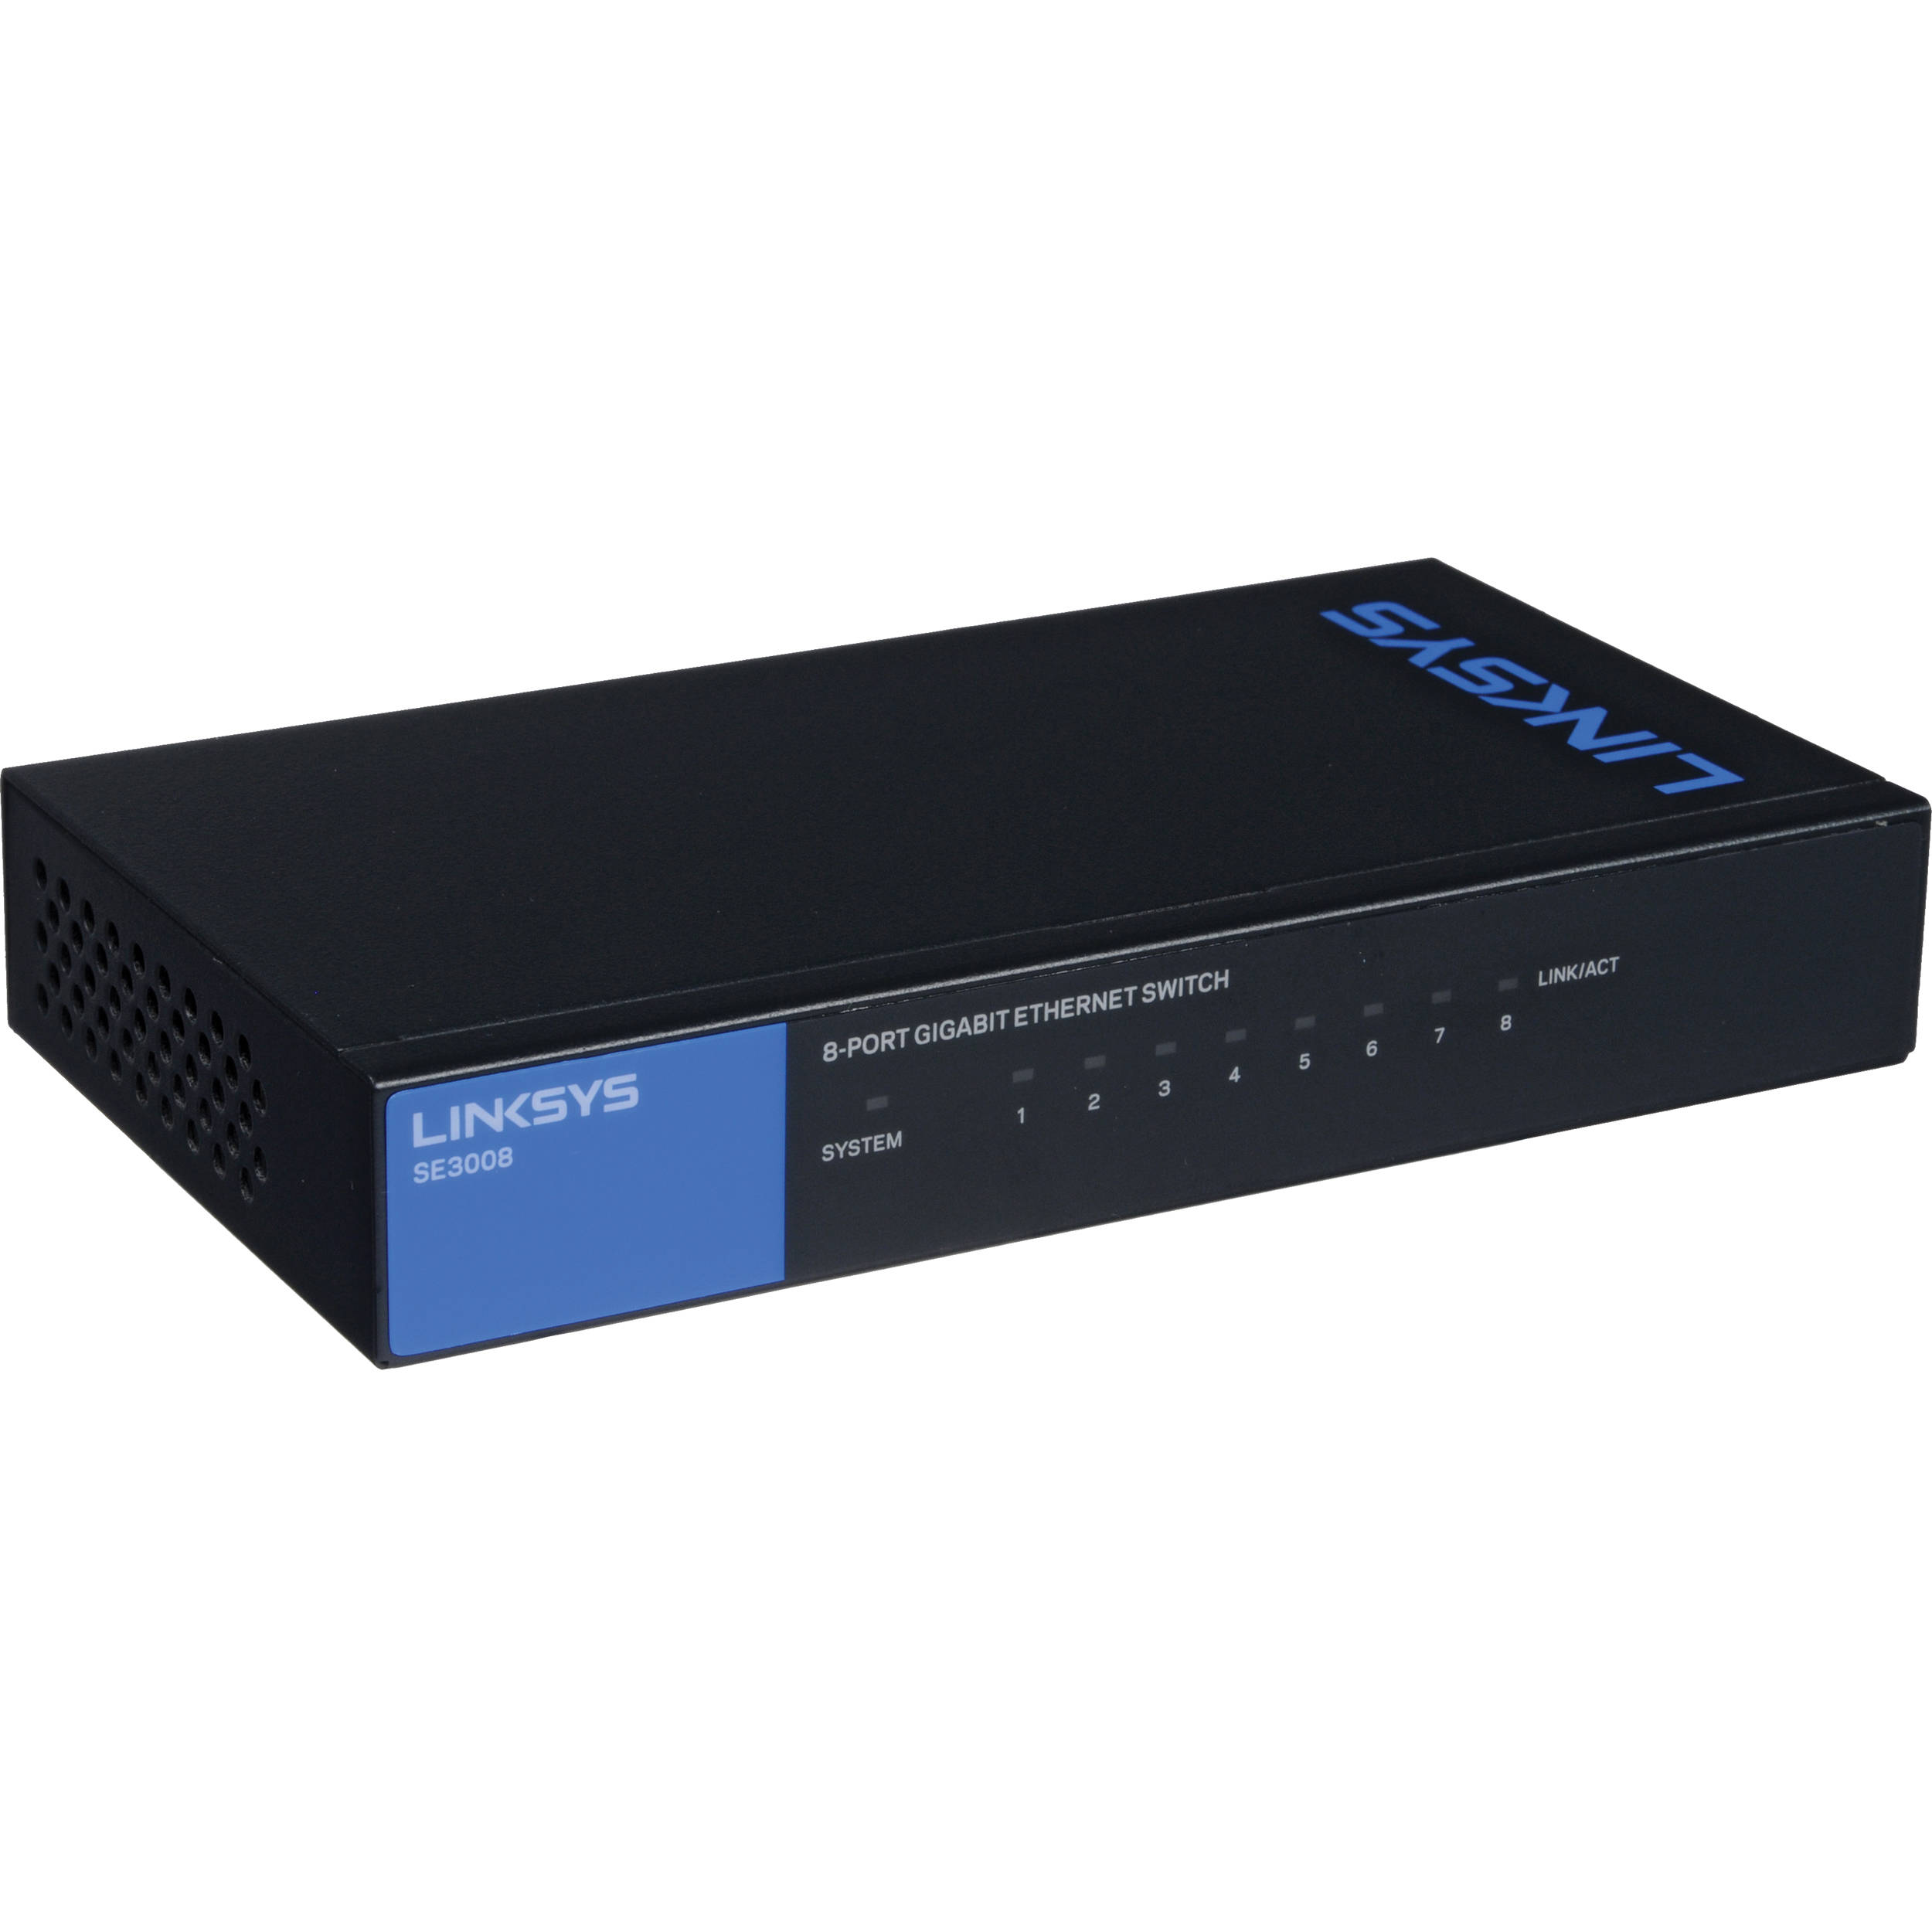 Linksys Bh Photo Video 4 Way Ethernet Switch Se3008 8 Port Gigabit